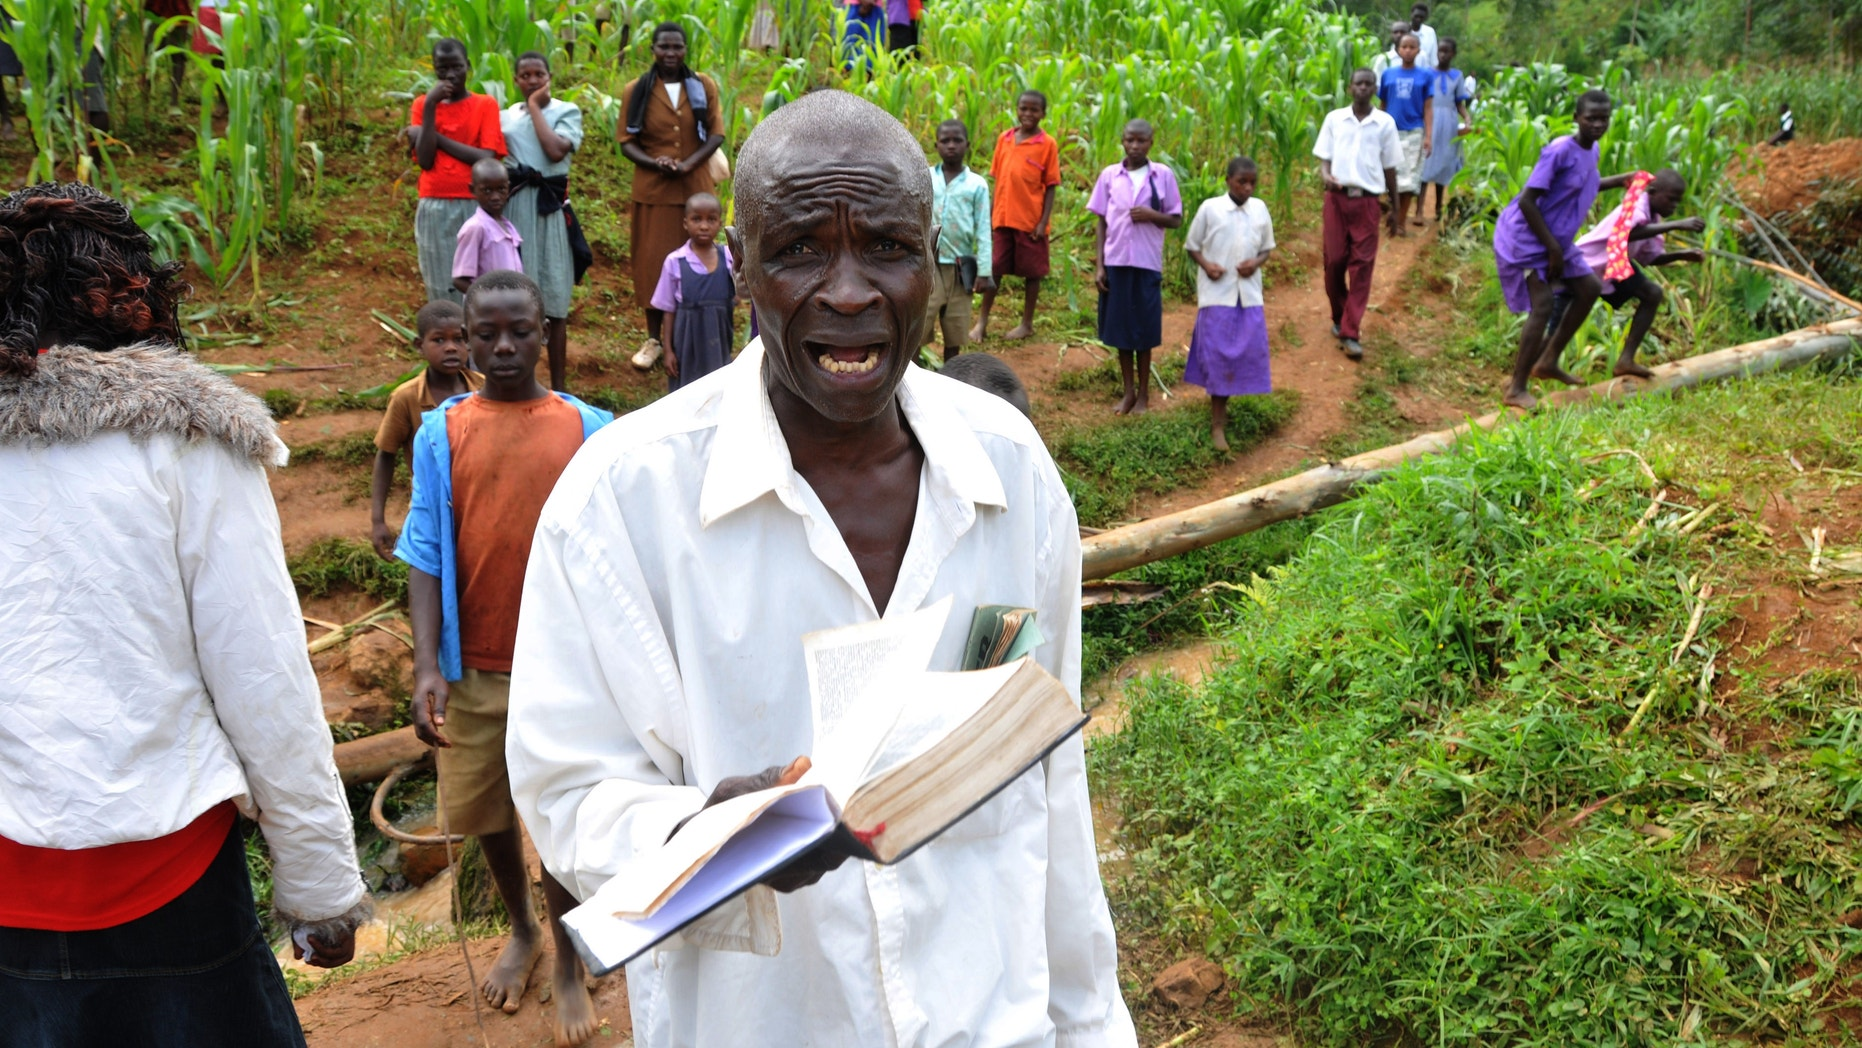 June 26, 2012: A man holding a bible cries out for God's mercy at the landslide in Bududa, about 250km east of Uganda capital Kampala.